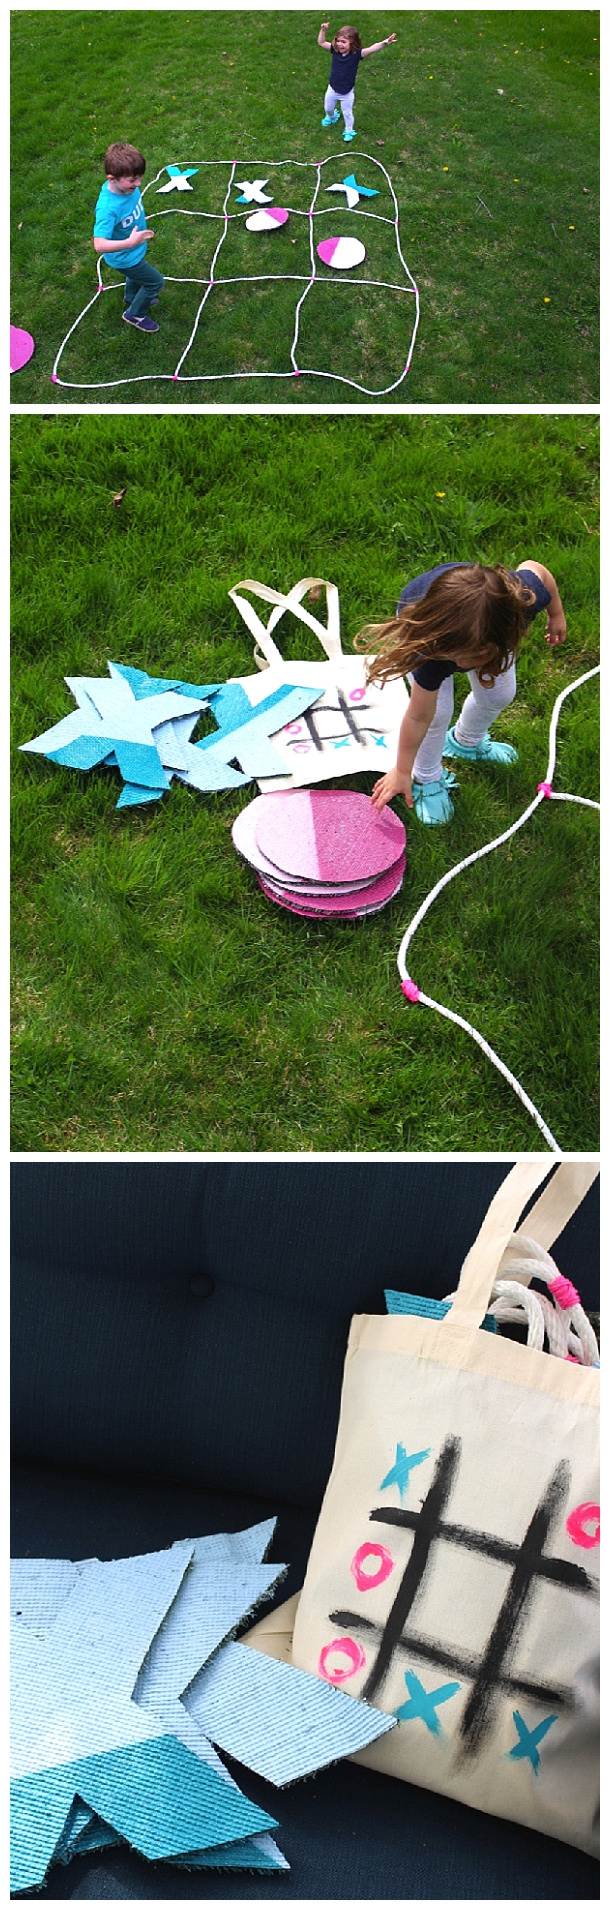 DIY Projects - Outdoor Games - Giant Do it Yourself Tic Tac Toe Game with Storage Bag Tutorial via Cloudy Day Gray #tictactoe #backyardtictactoe #gianttictactoe #backyardgames #diyoutdoorgames #barbecuegames #barbecueideas #backyardpartygames #partygames #outdoorgames #diygames #yardgames #diyyardgames #summergames #summerparty #party #4thofJuly #fathersday #cookoutgames